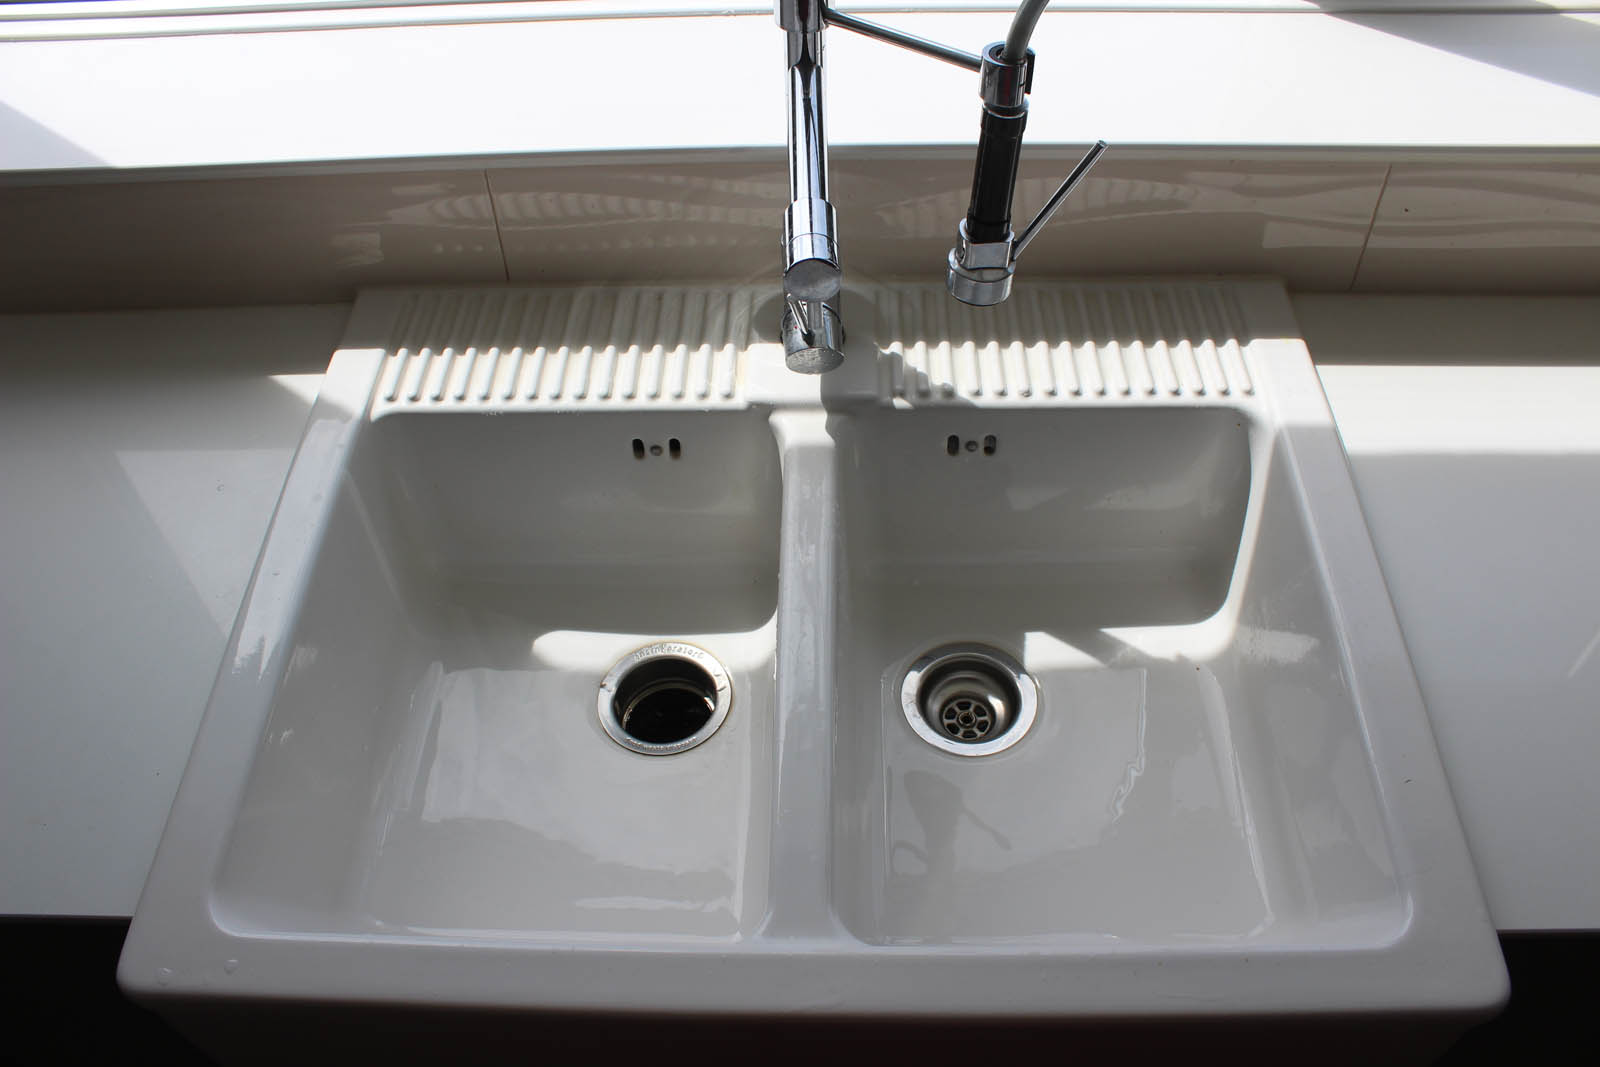 unblock bathroom sink how to unblock a bathroom or kitchen sink drainage plus 14850